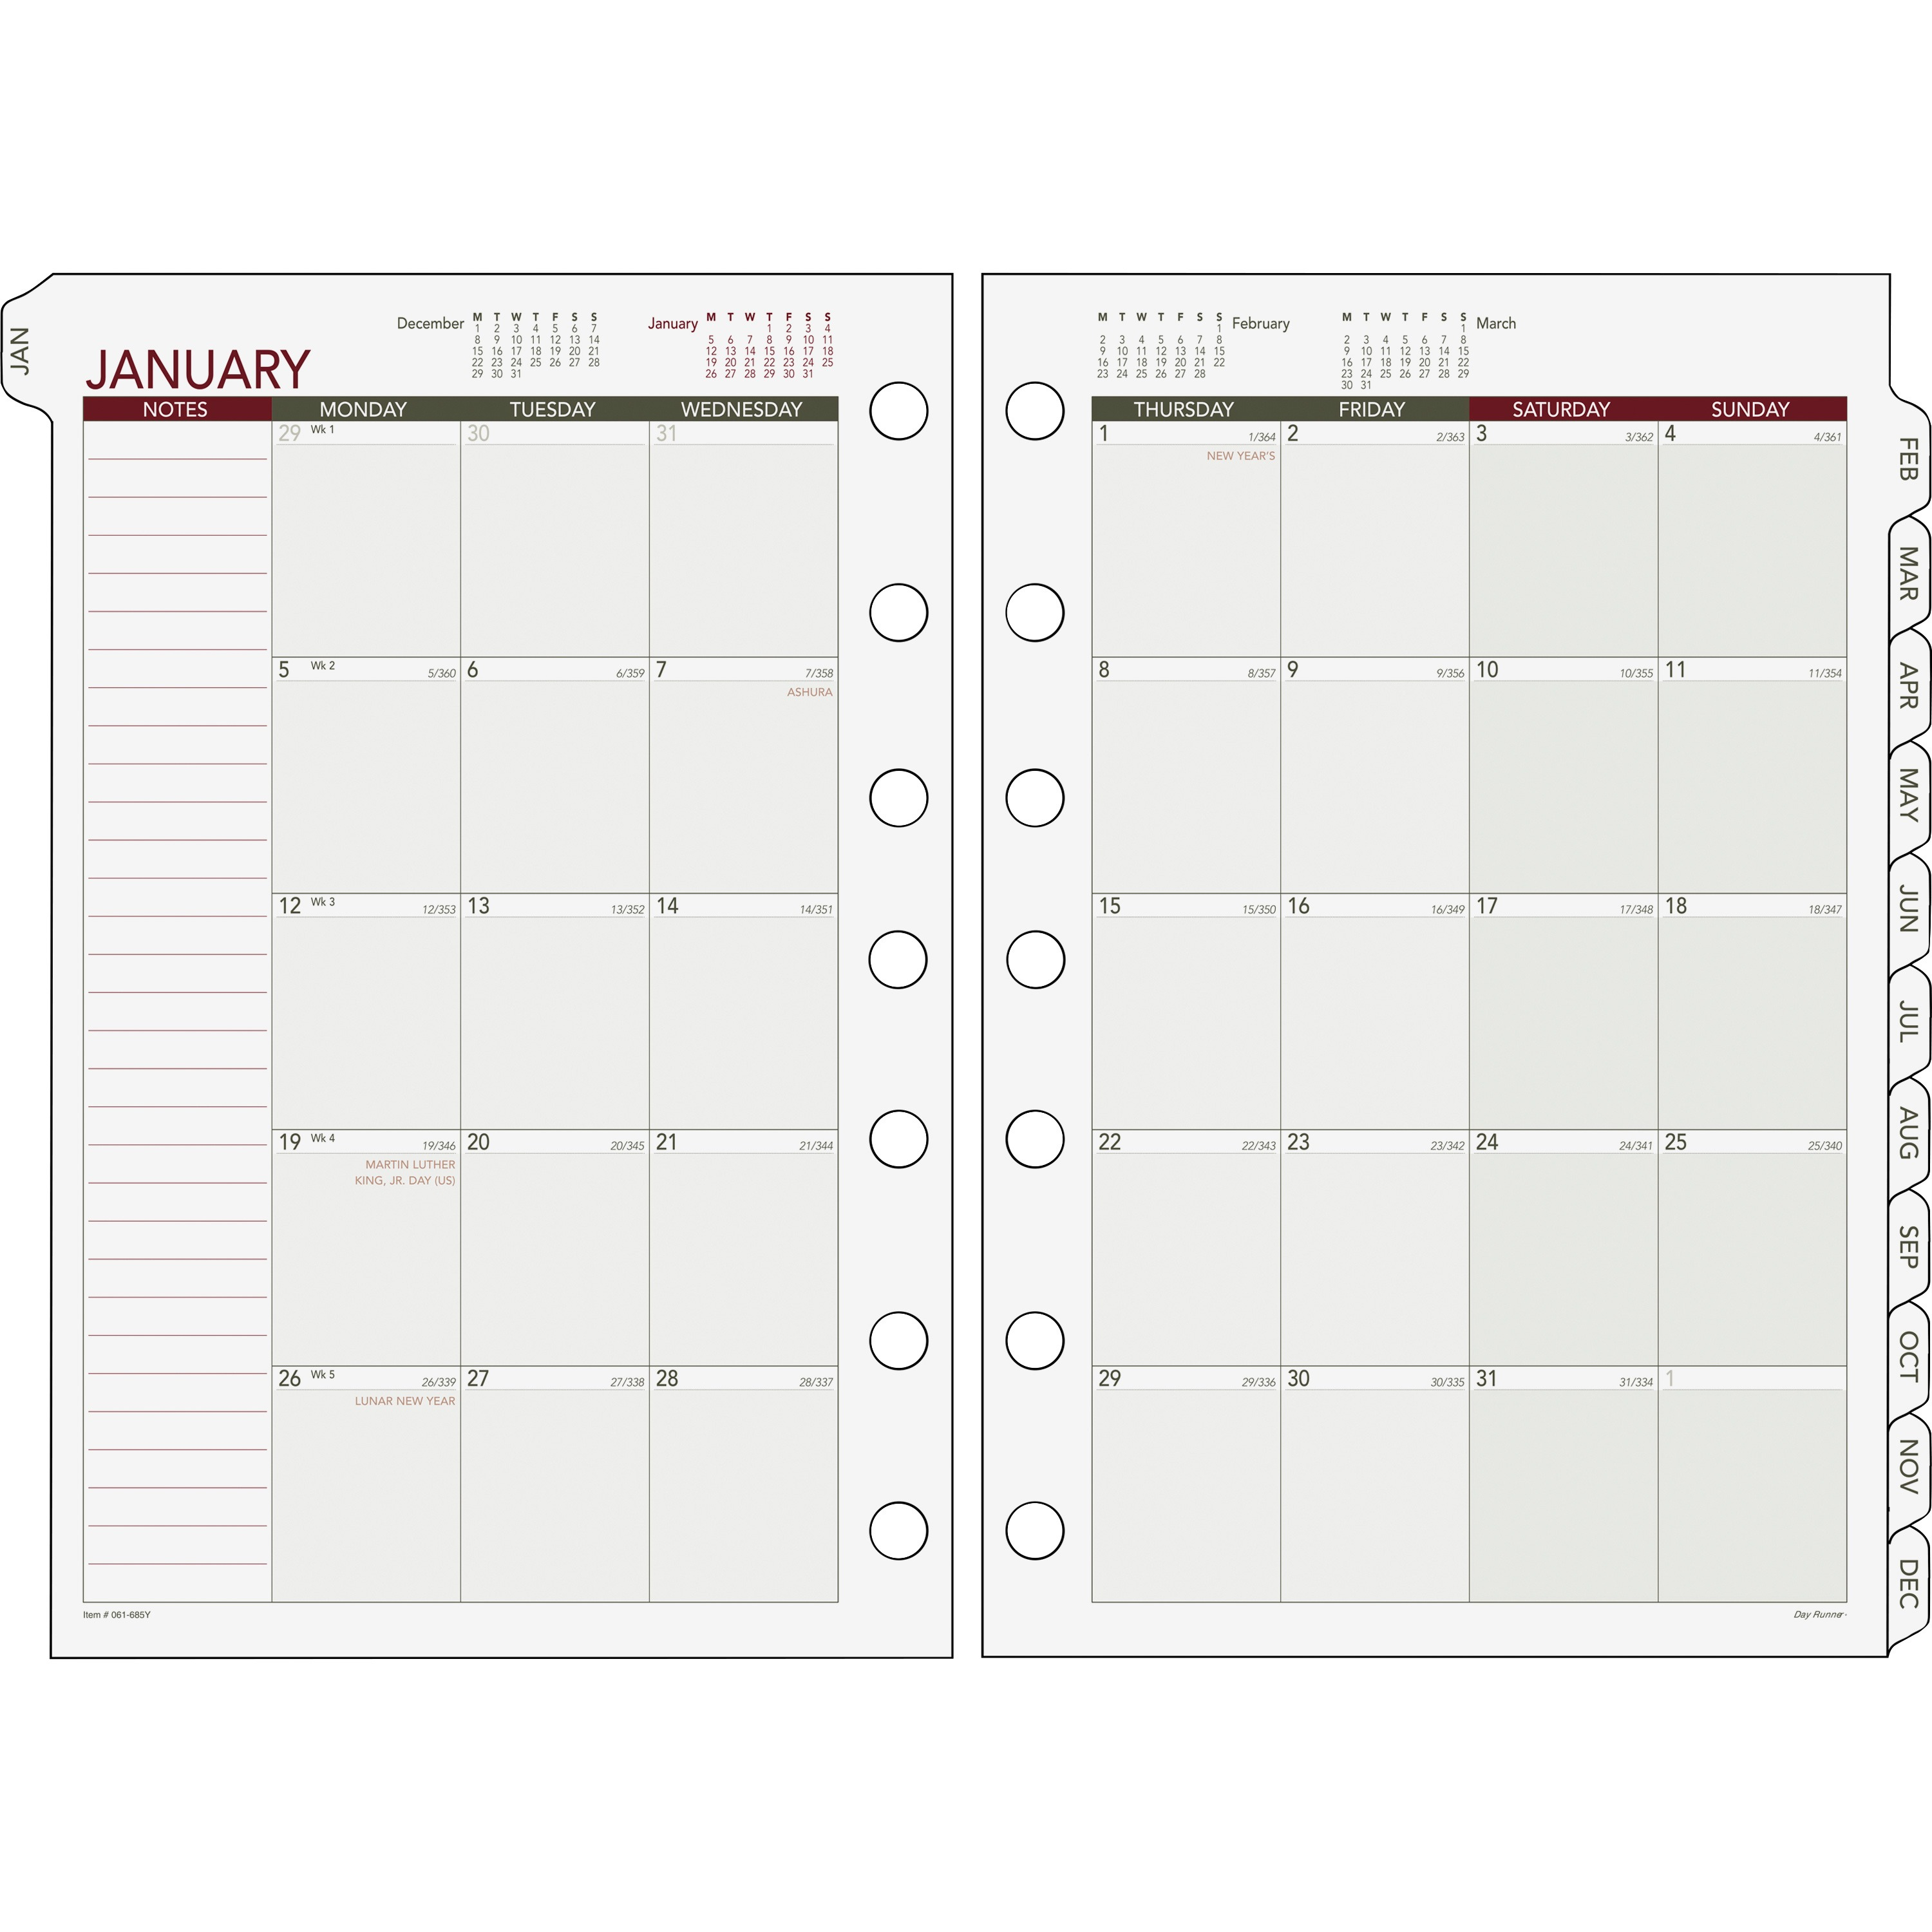 Day Runner Loose-leaf Monthly Planner Refills by ACCO Brands Corporation